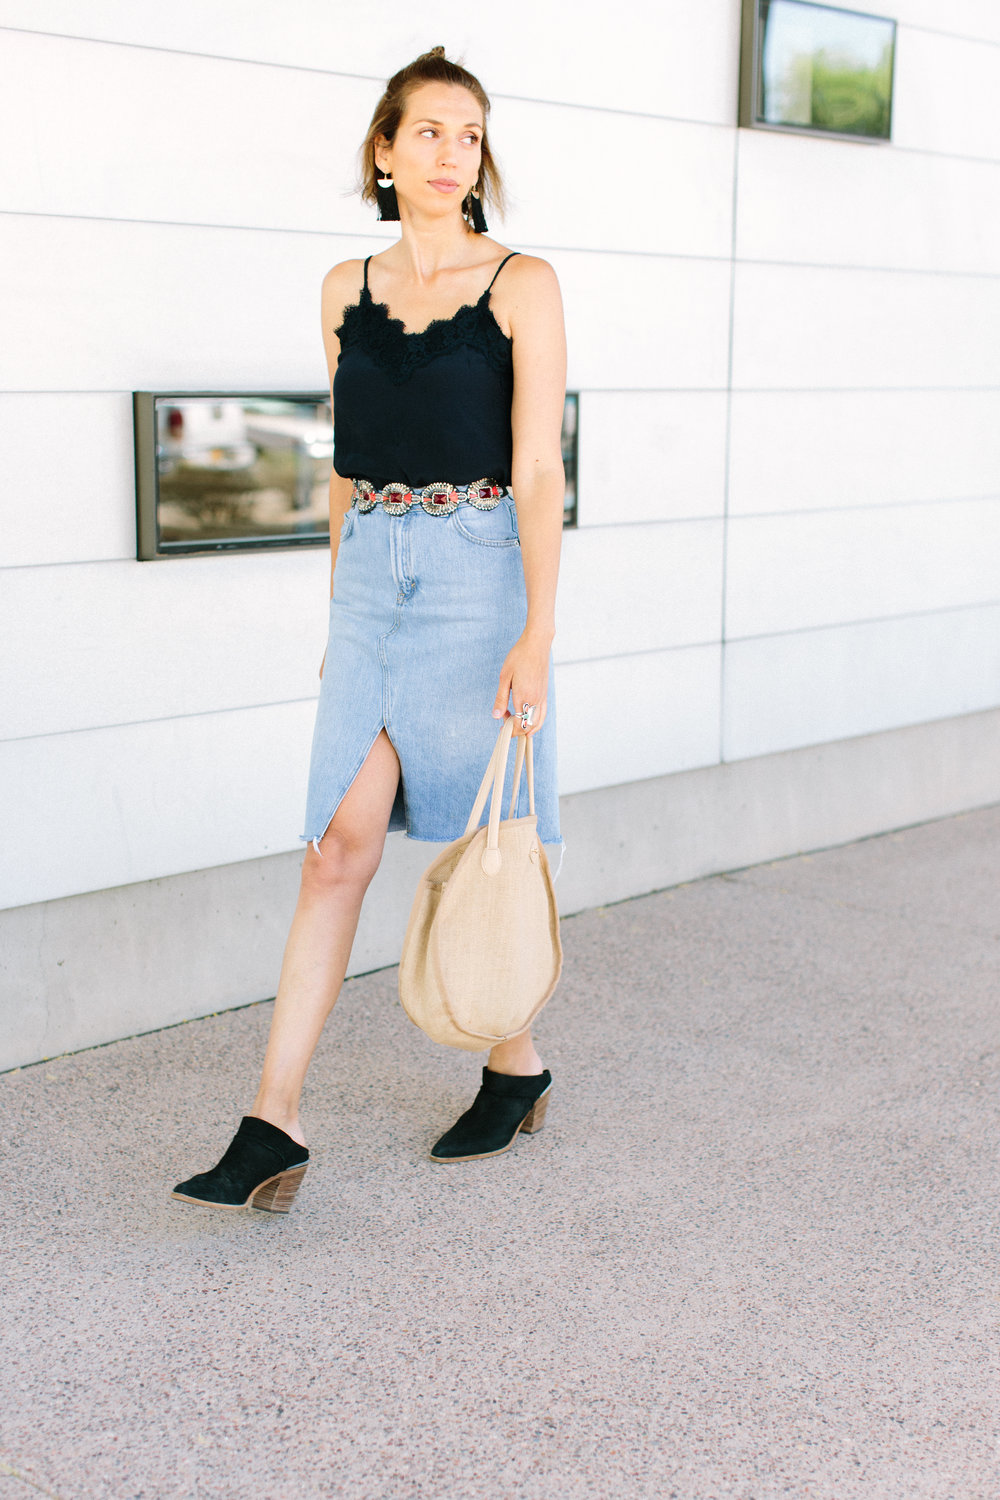 49ee7d64f These days, one of my favorite go-to outfits is a denim pencil skirt and a  cami. It's simple, femme and cool enough for hot summer nights.